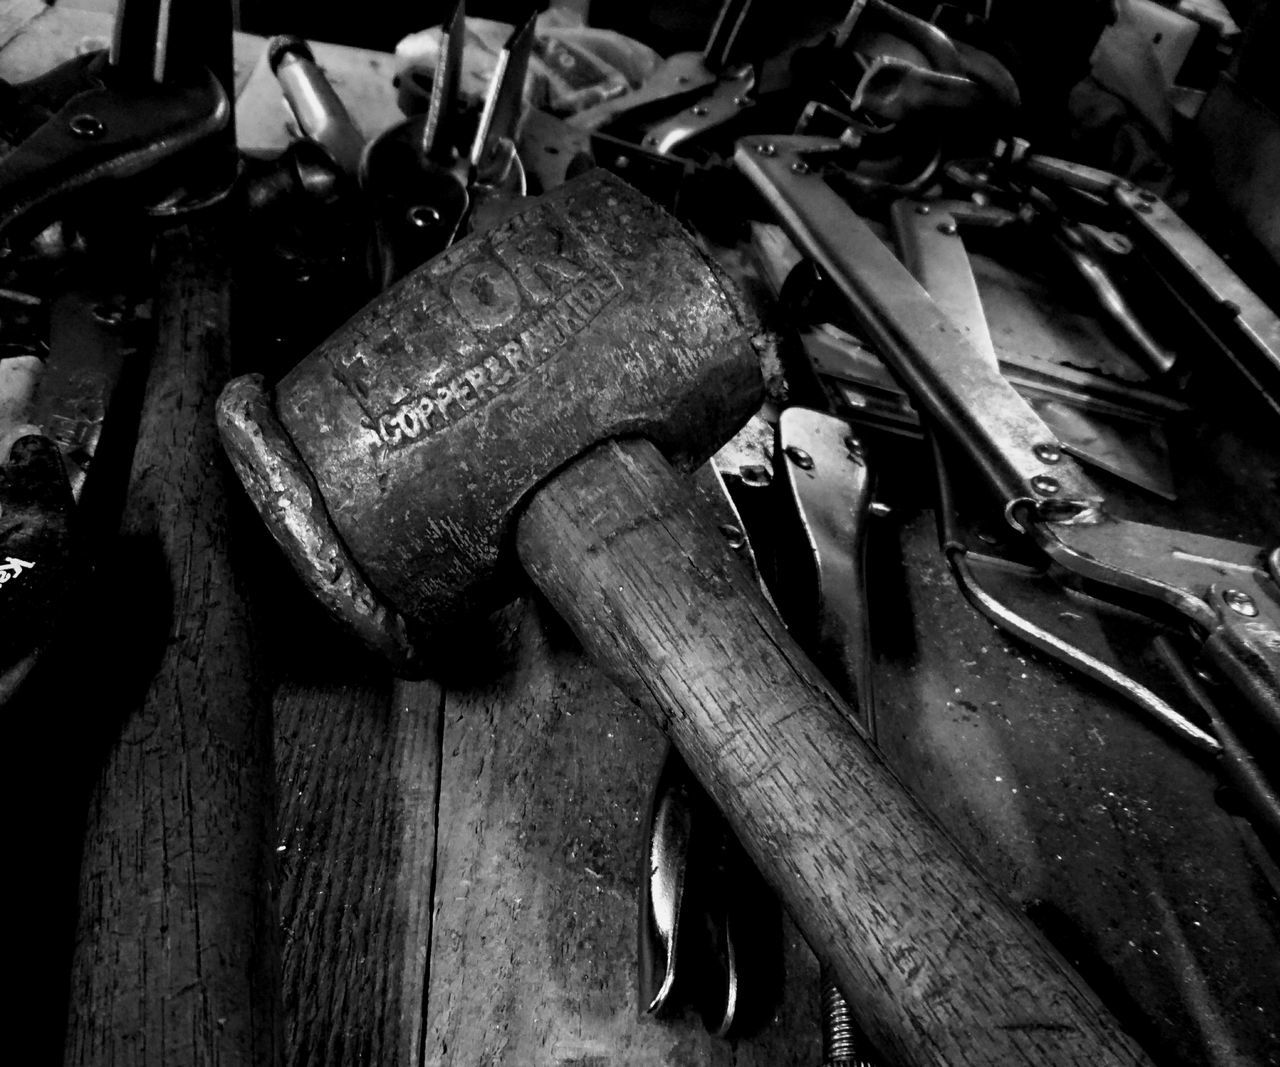 Abundance Choice Close-up Copper  Equipment Full Frame Group Of Objects Hammer Large Group Of Objects Machine Part Machinery Mallet Molegrips Part Of Rawhide Retail  Still Life Thor  Thors Hammer Tools Variation Wood - Material Work Tool Workshop Workshop